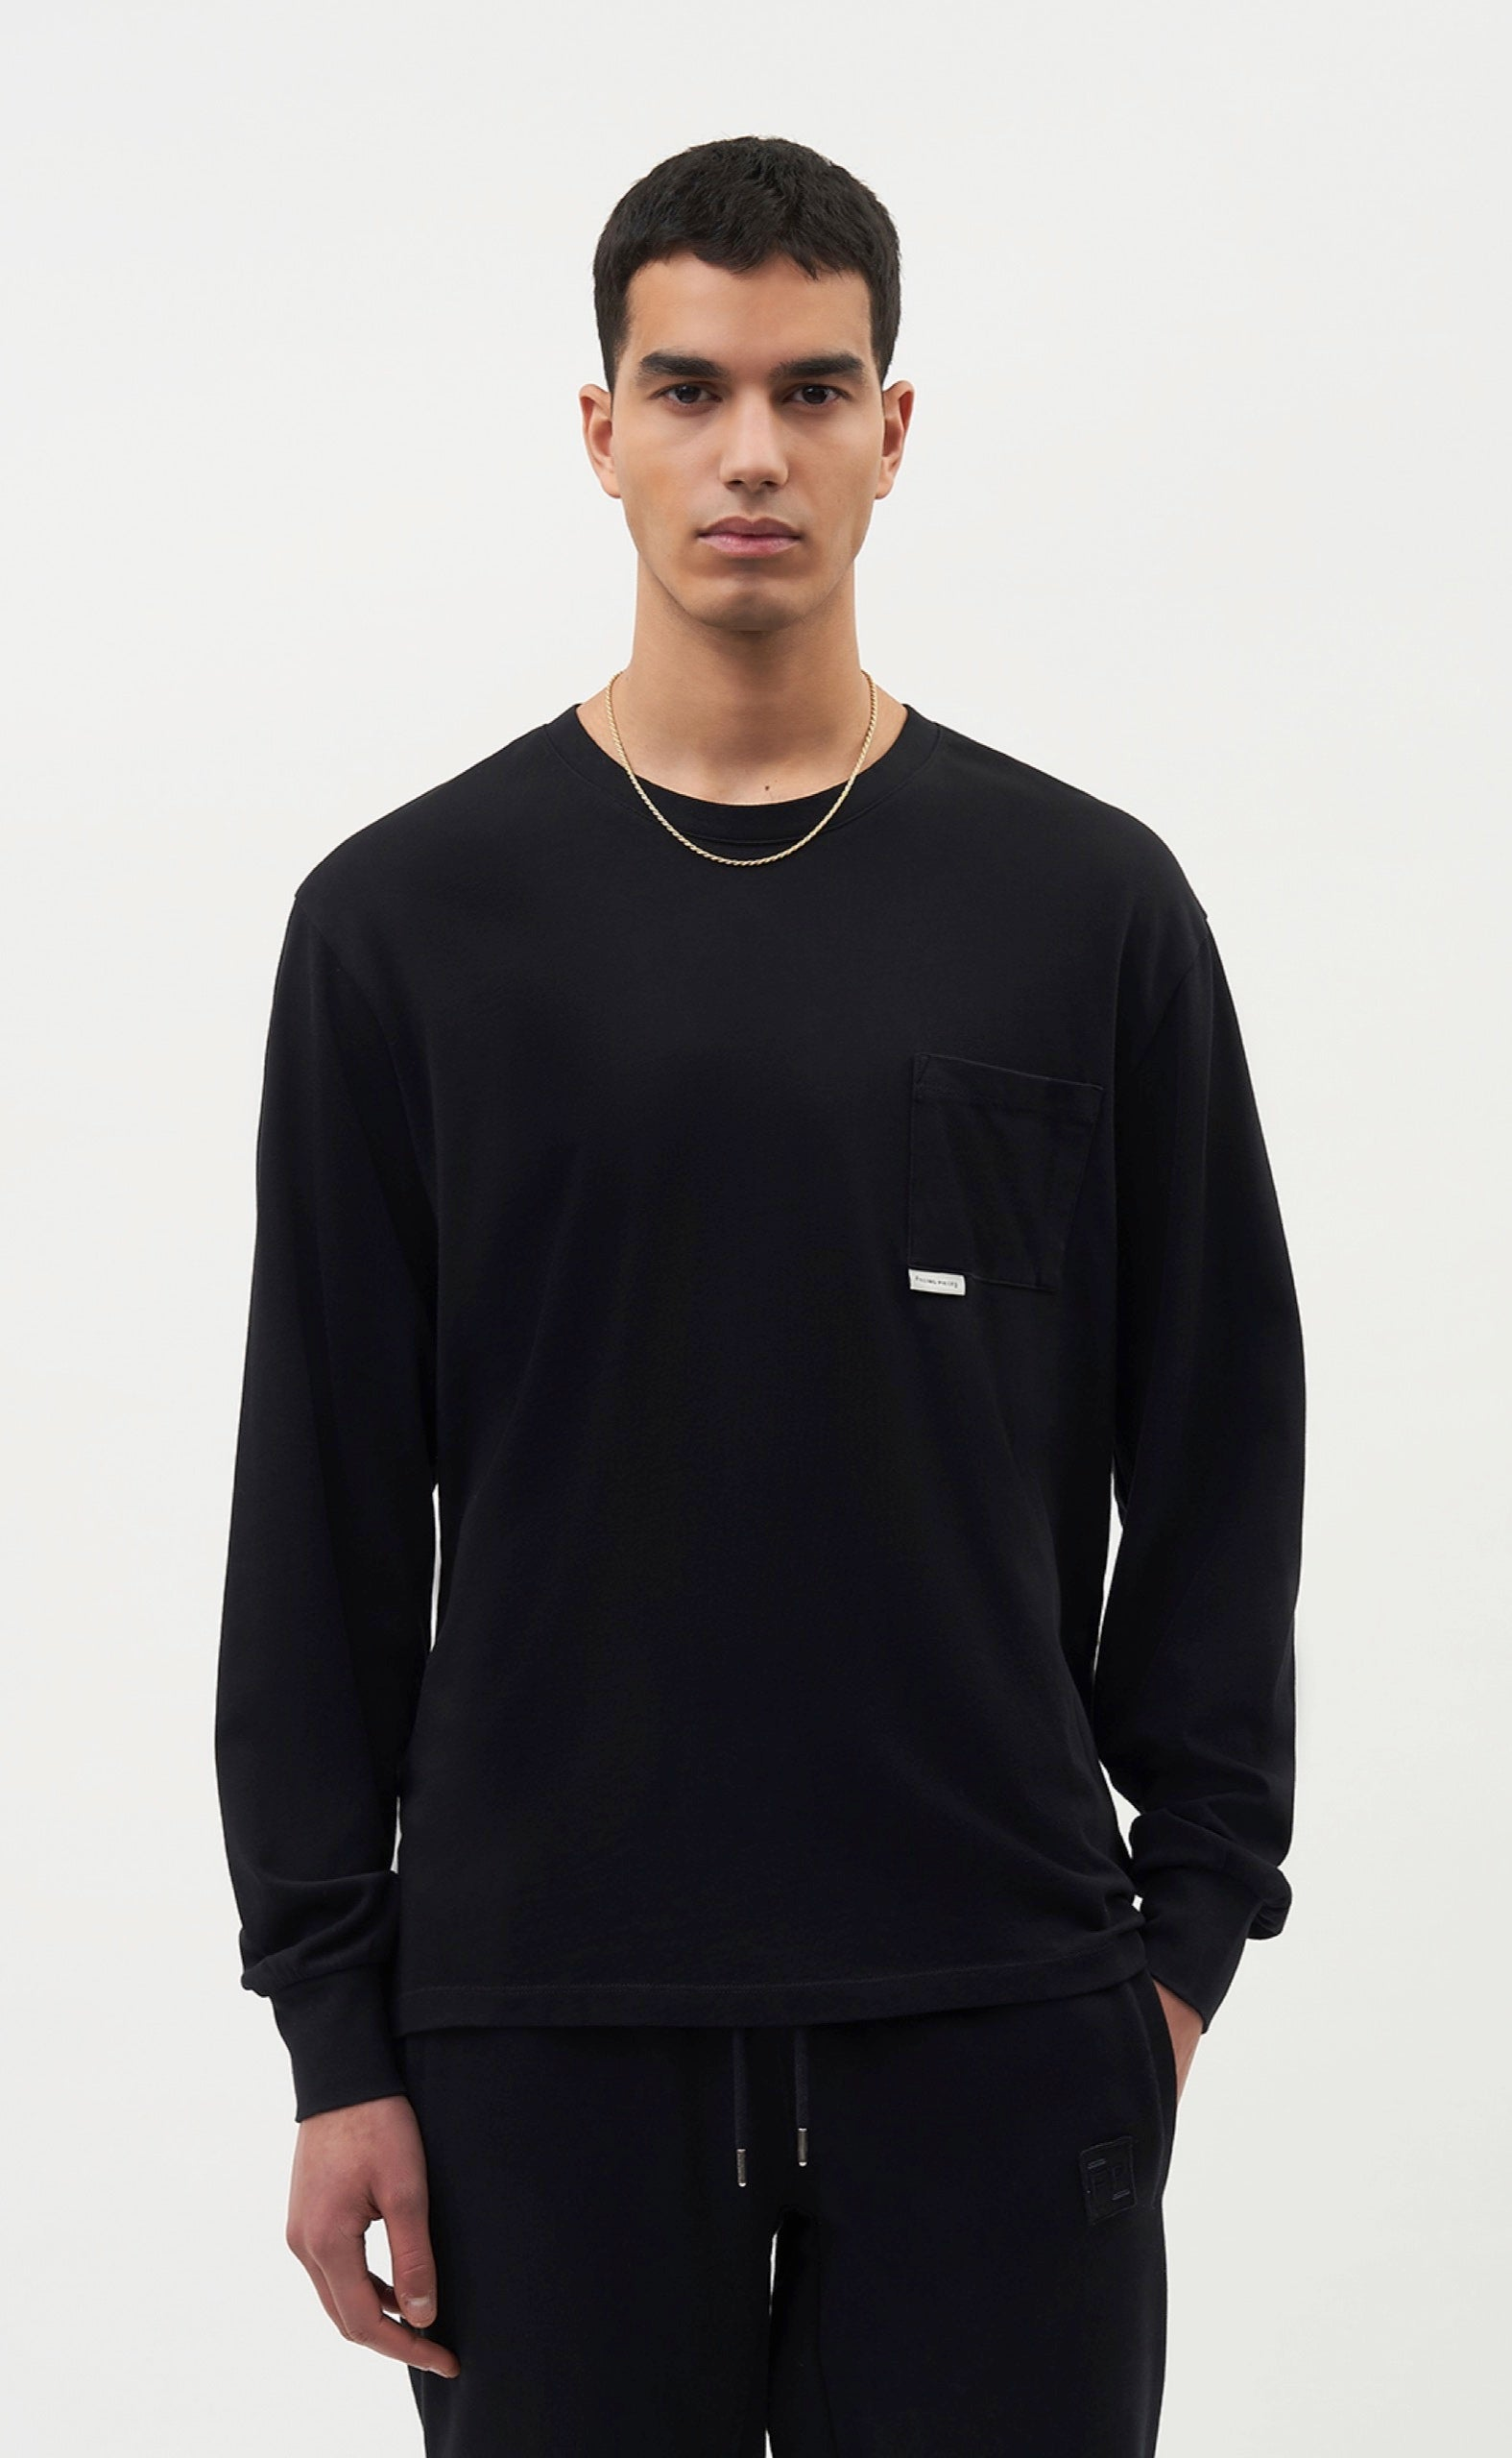 Pocket Longsleeve Black - men